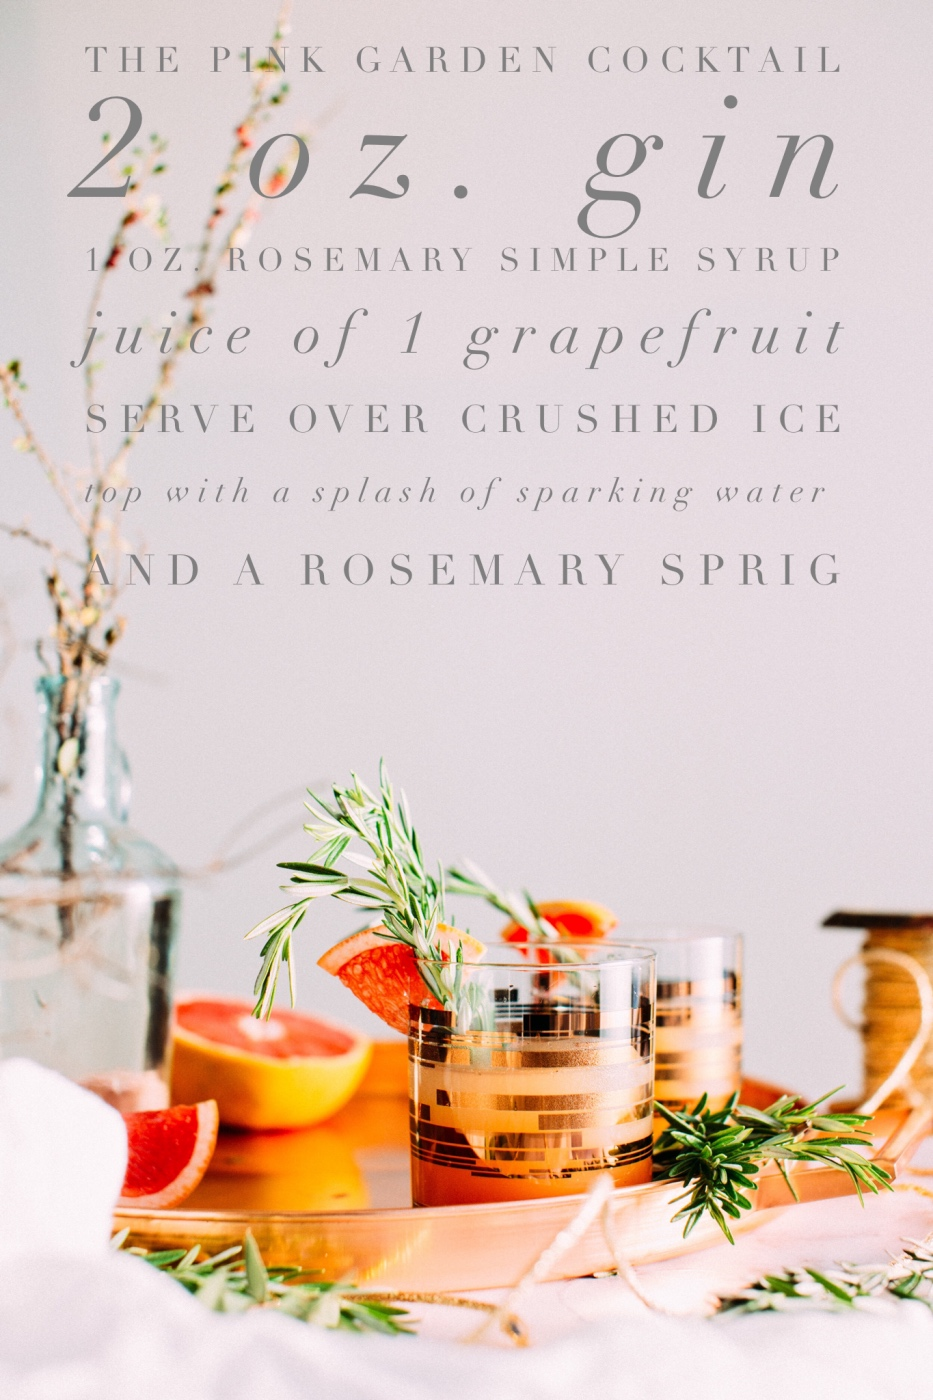 the pink garden cocktail recipe pinterest pin_small